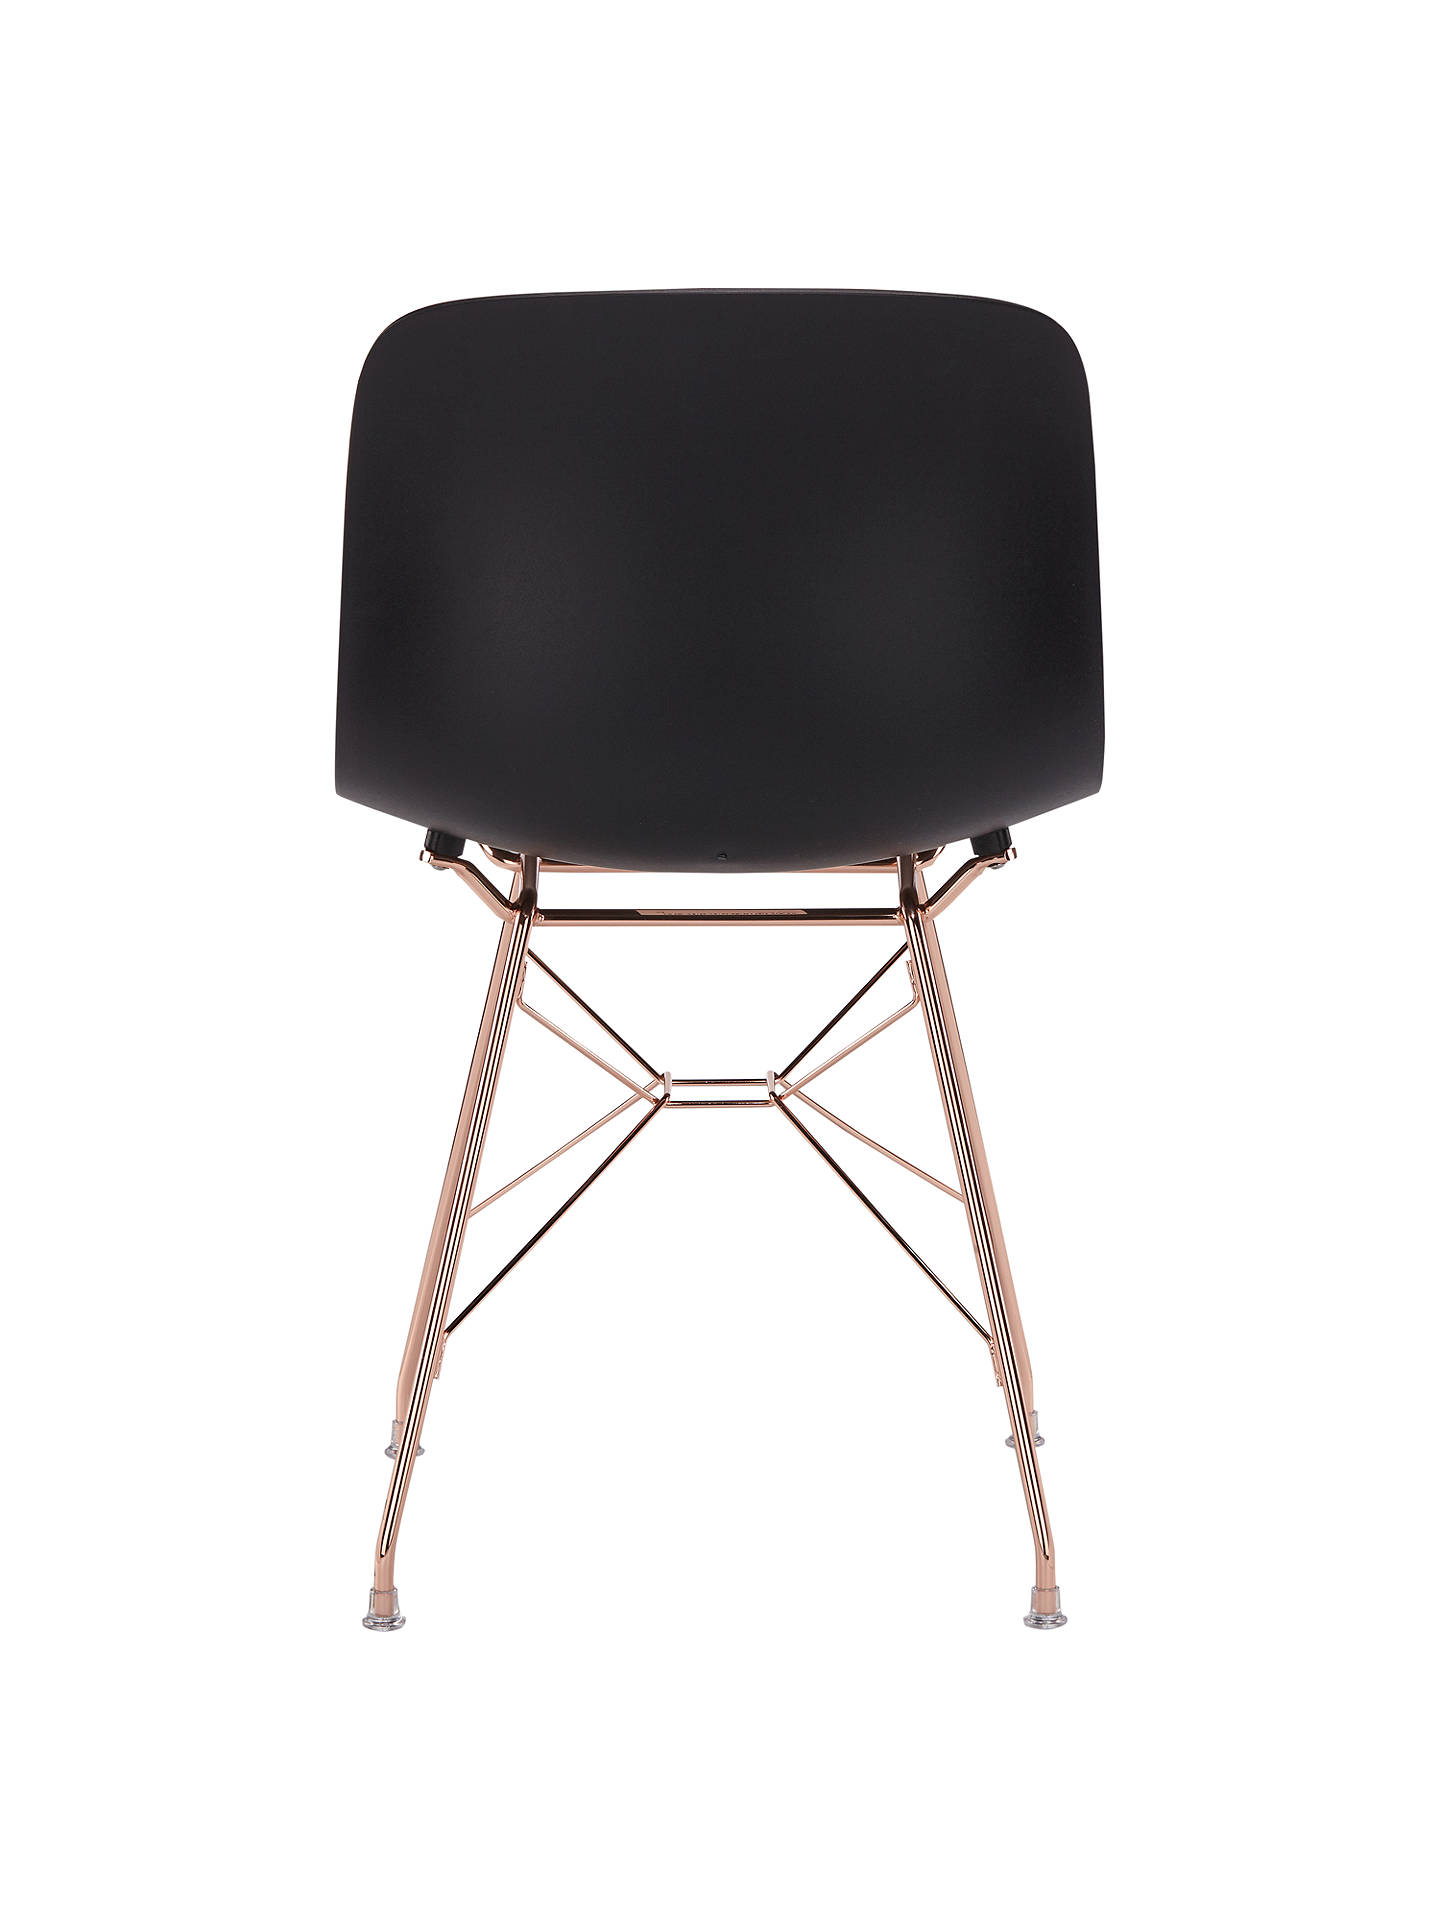 BuyMagis Troy Chair, Black/Copper Online at johnlewis.com